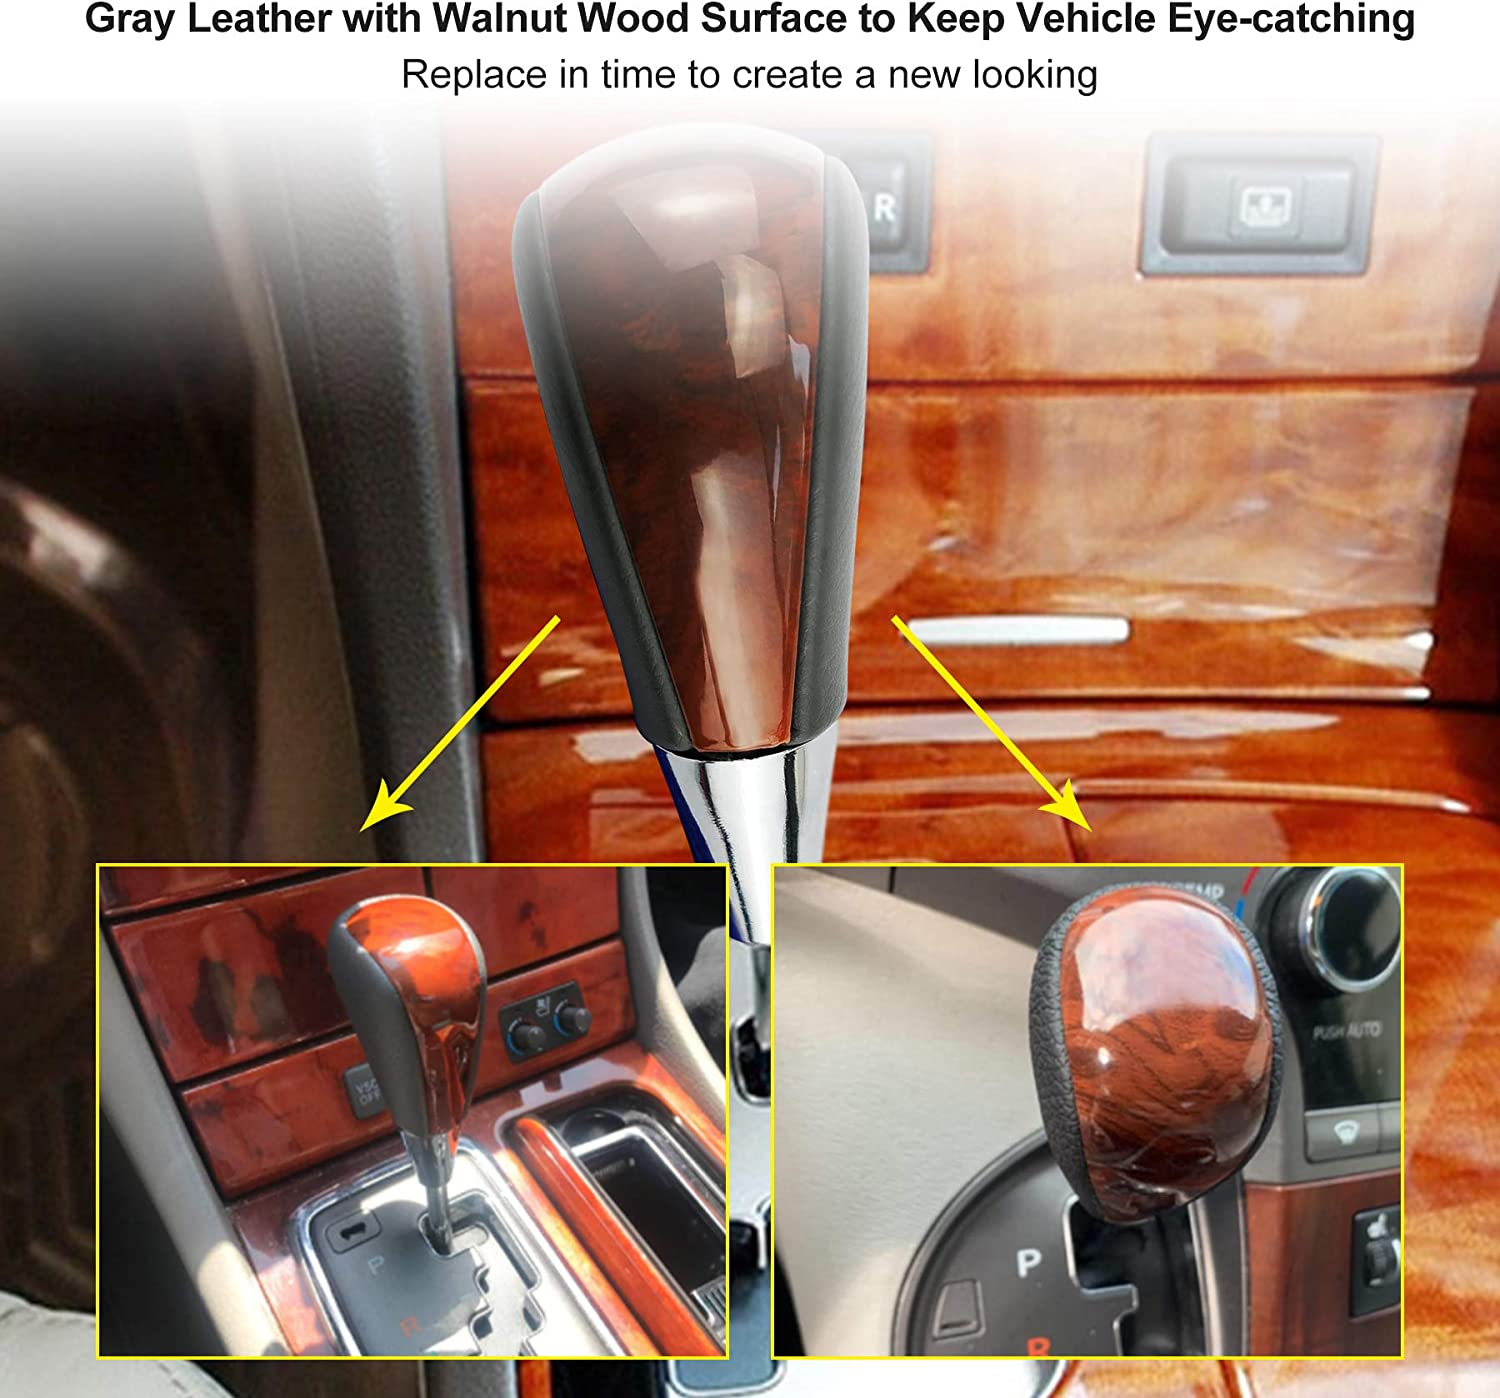 Qnbes Leather Wood Gear Shift Knob Fit for Lexus /& Toyota Multiple Models Upgrade Gray Brown Walnut Stick Lever Gear Shift Knob Compatible with Lexus Toyota ES GS SC Sienna Avalon Yaris 4Runner